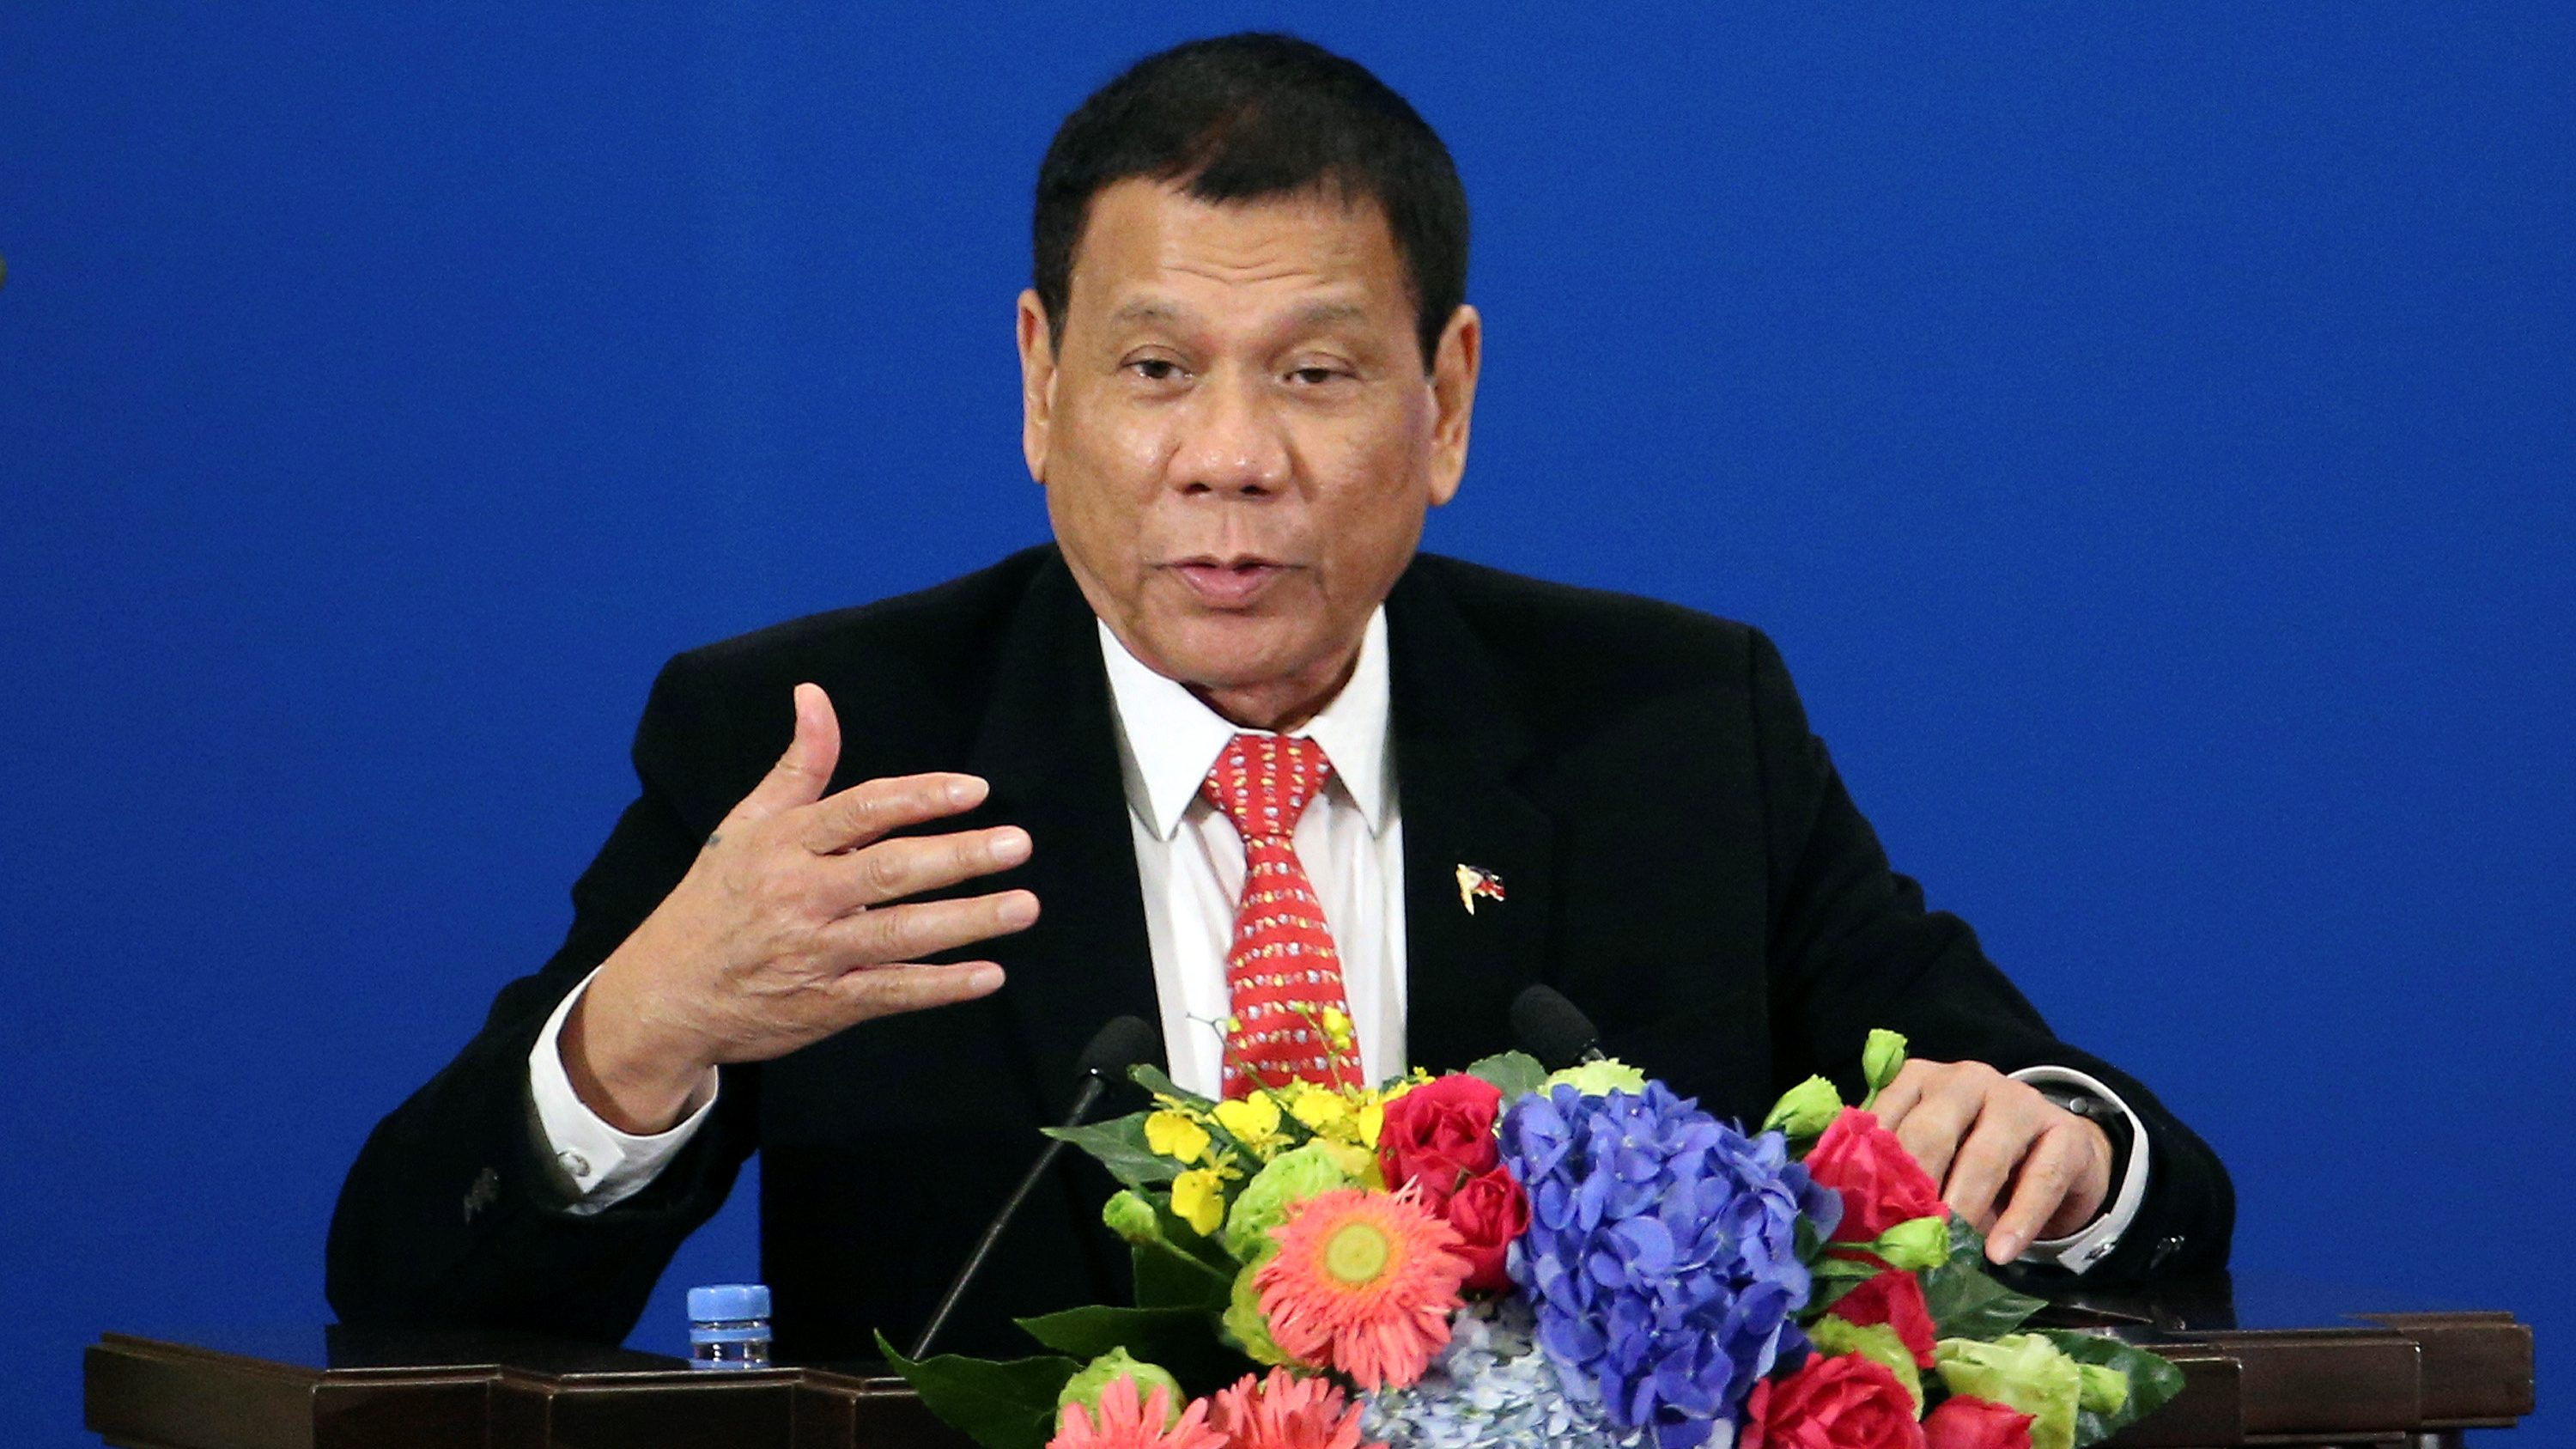 pictures Philippine President Duterte gives remarks raising questions about his health